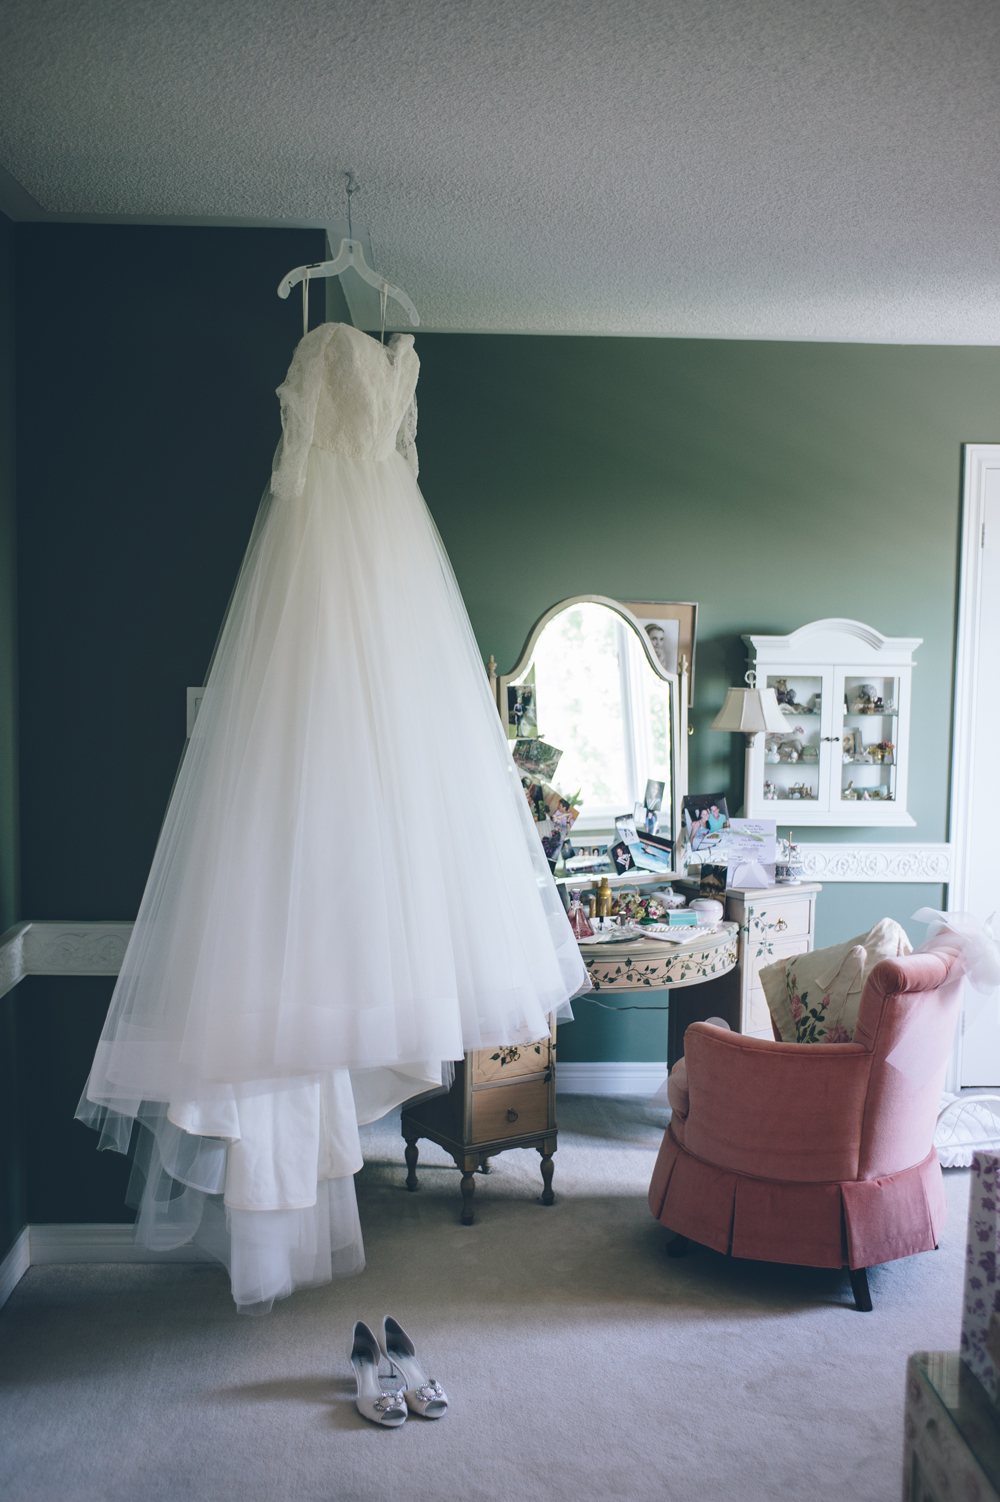 Melissa-and-Alex-Mimmo-and-Co-pearlbridalhouse.com-34.jpg